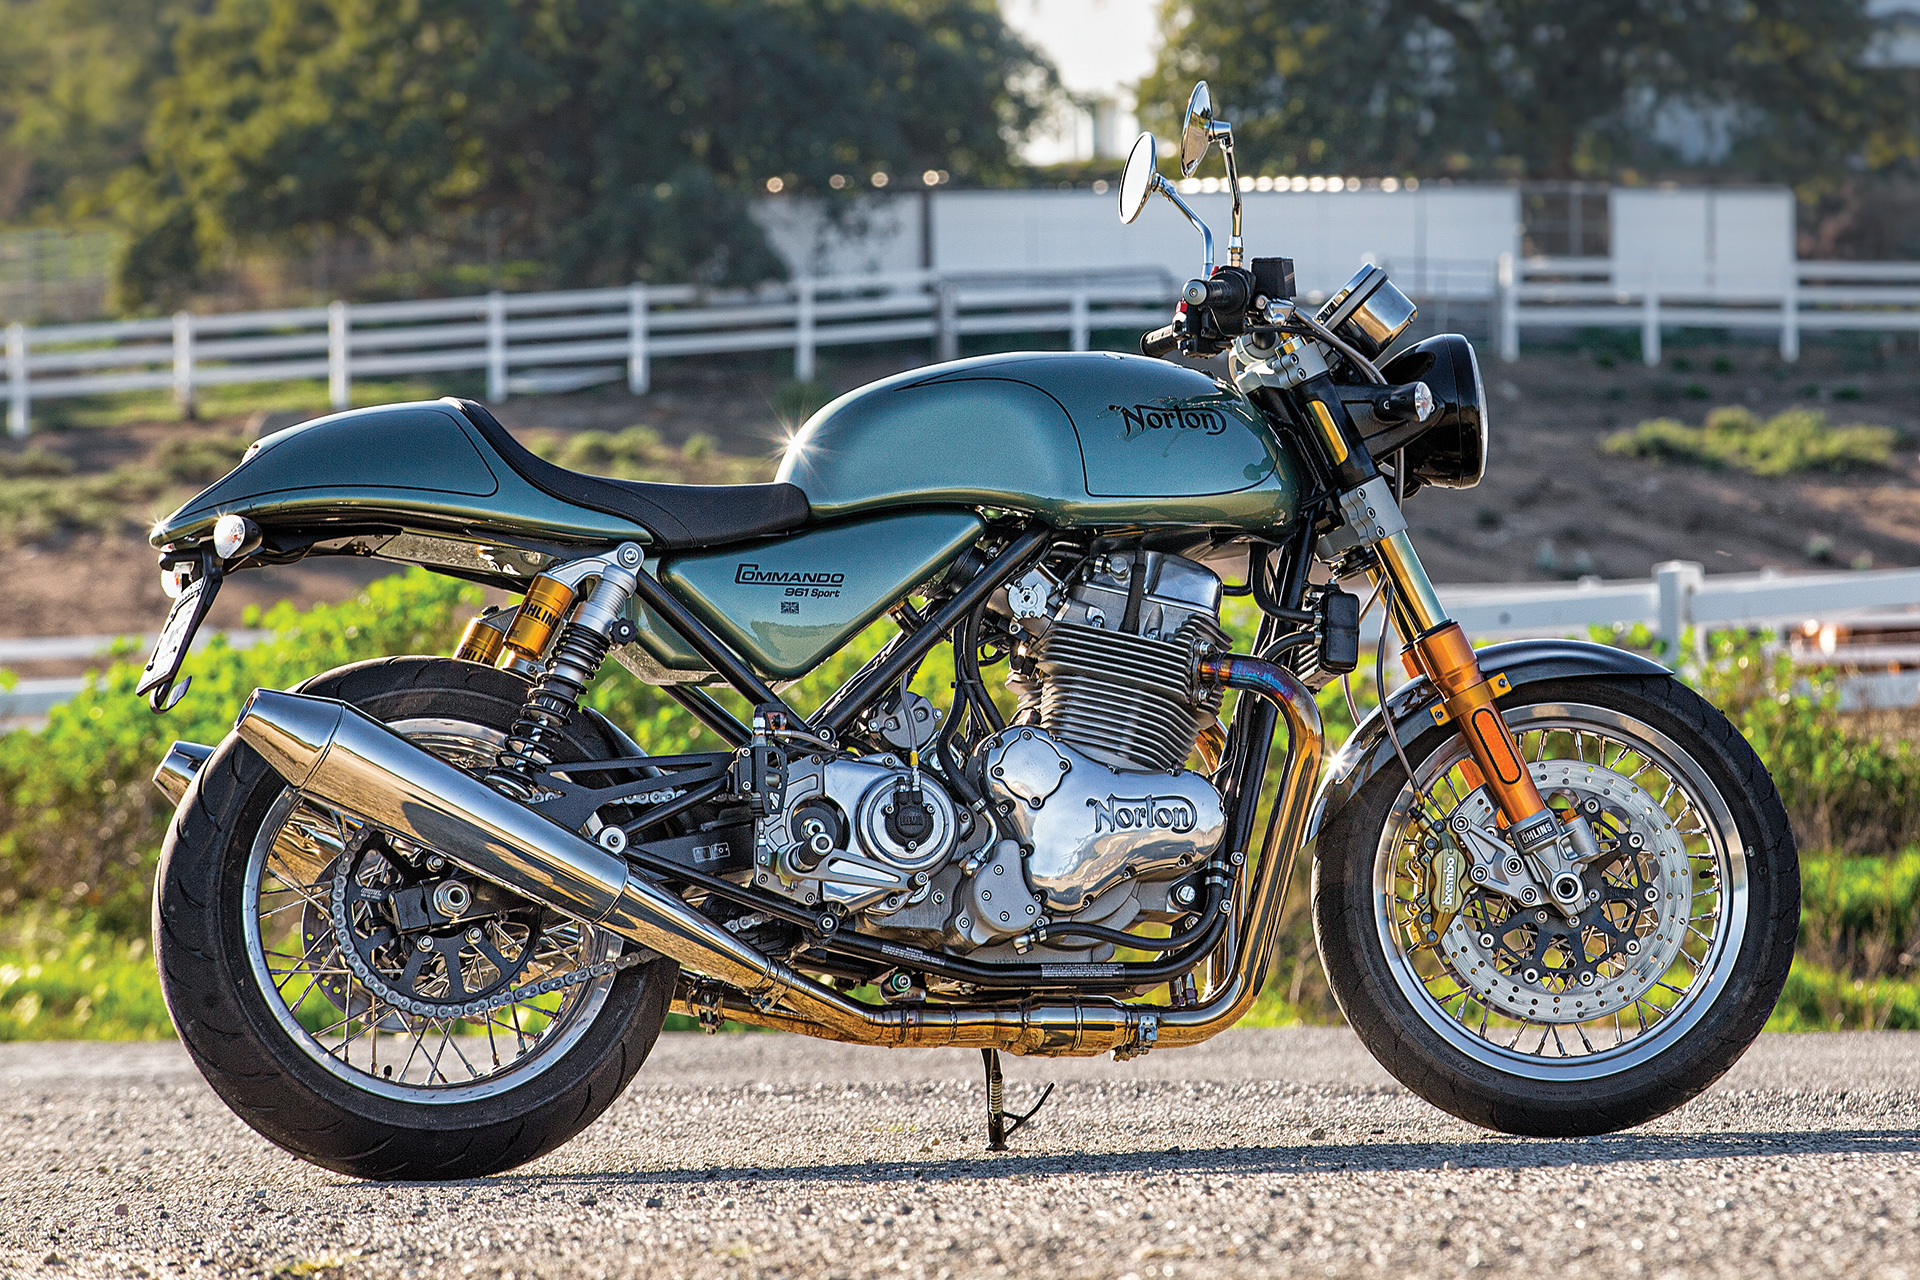 2015 Norton Commando 961 Sport Motorcycle Review Cycle World